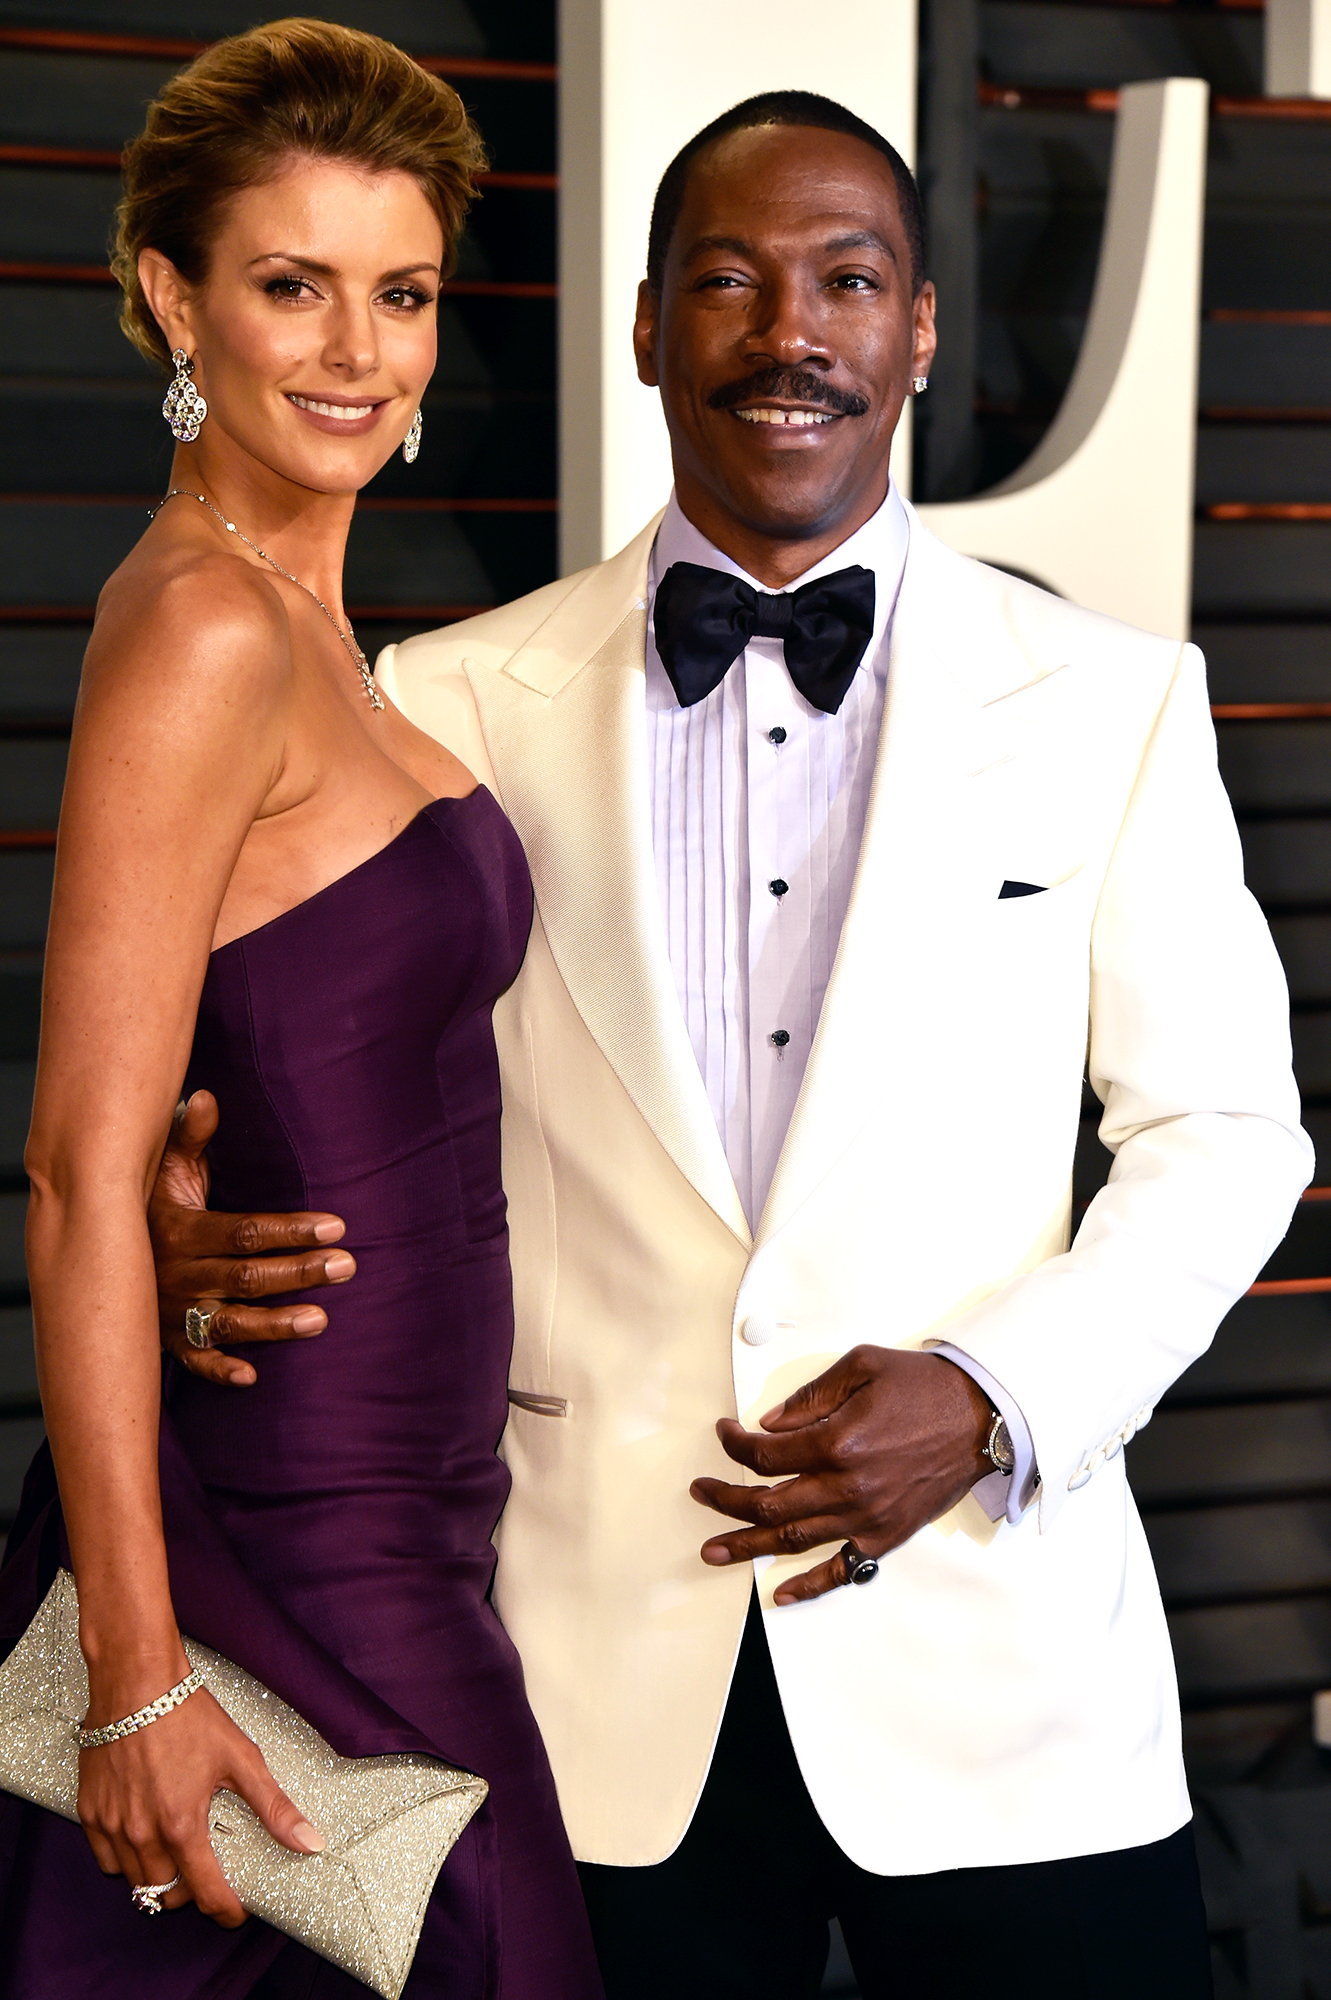 Eddie Murphy's Girlfriend Paige Butcher Gives Birth to His 10th Child